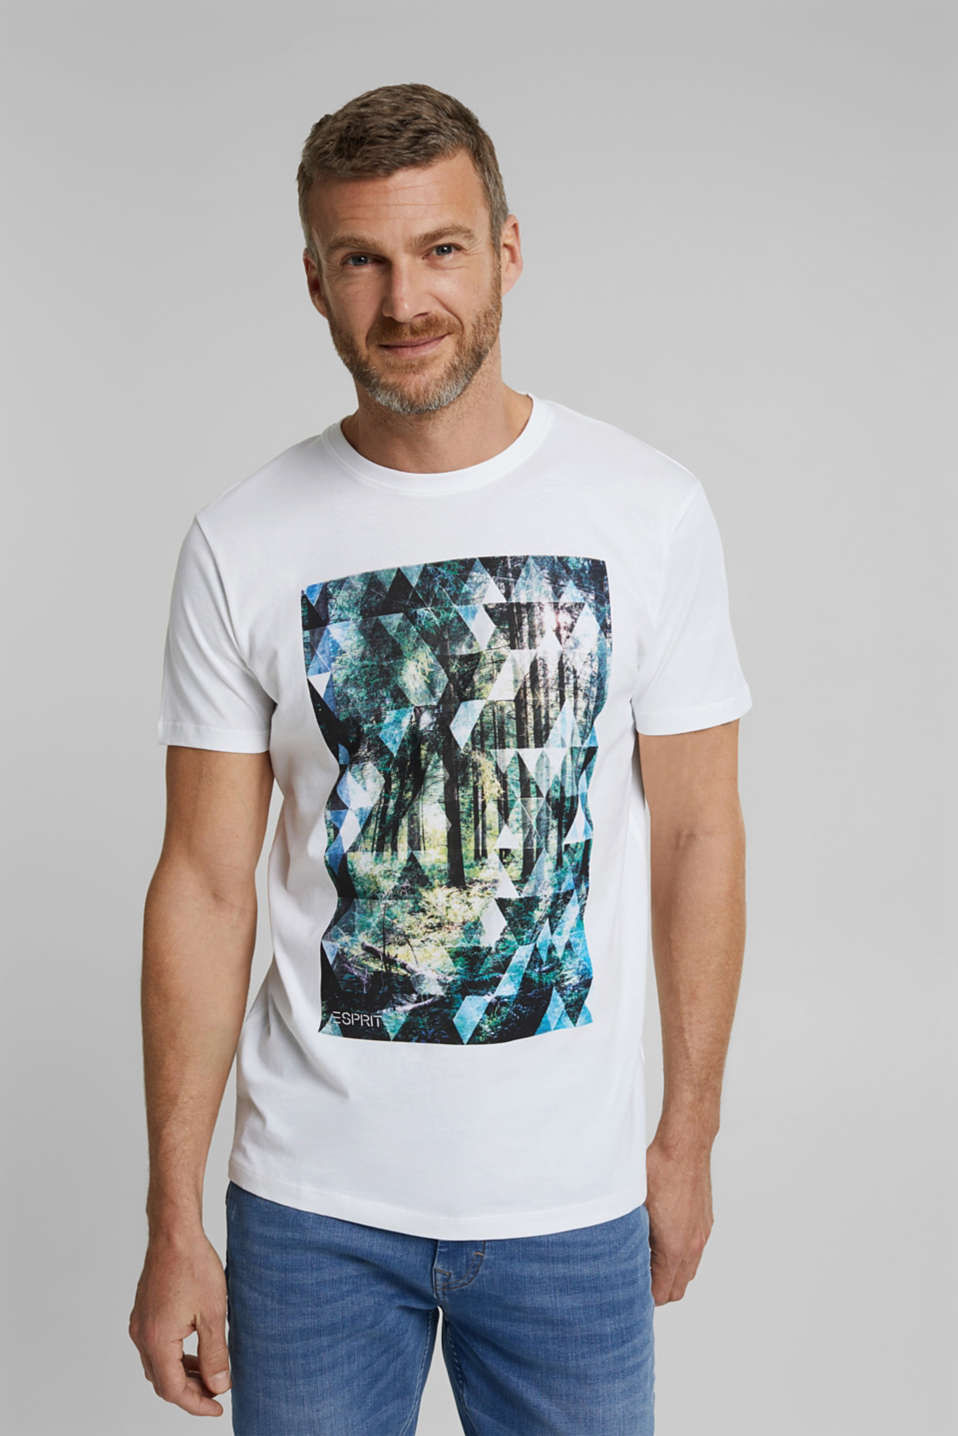 Esprit - T-shirt met fotoprint, 100% organic cotton